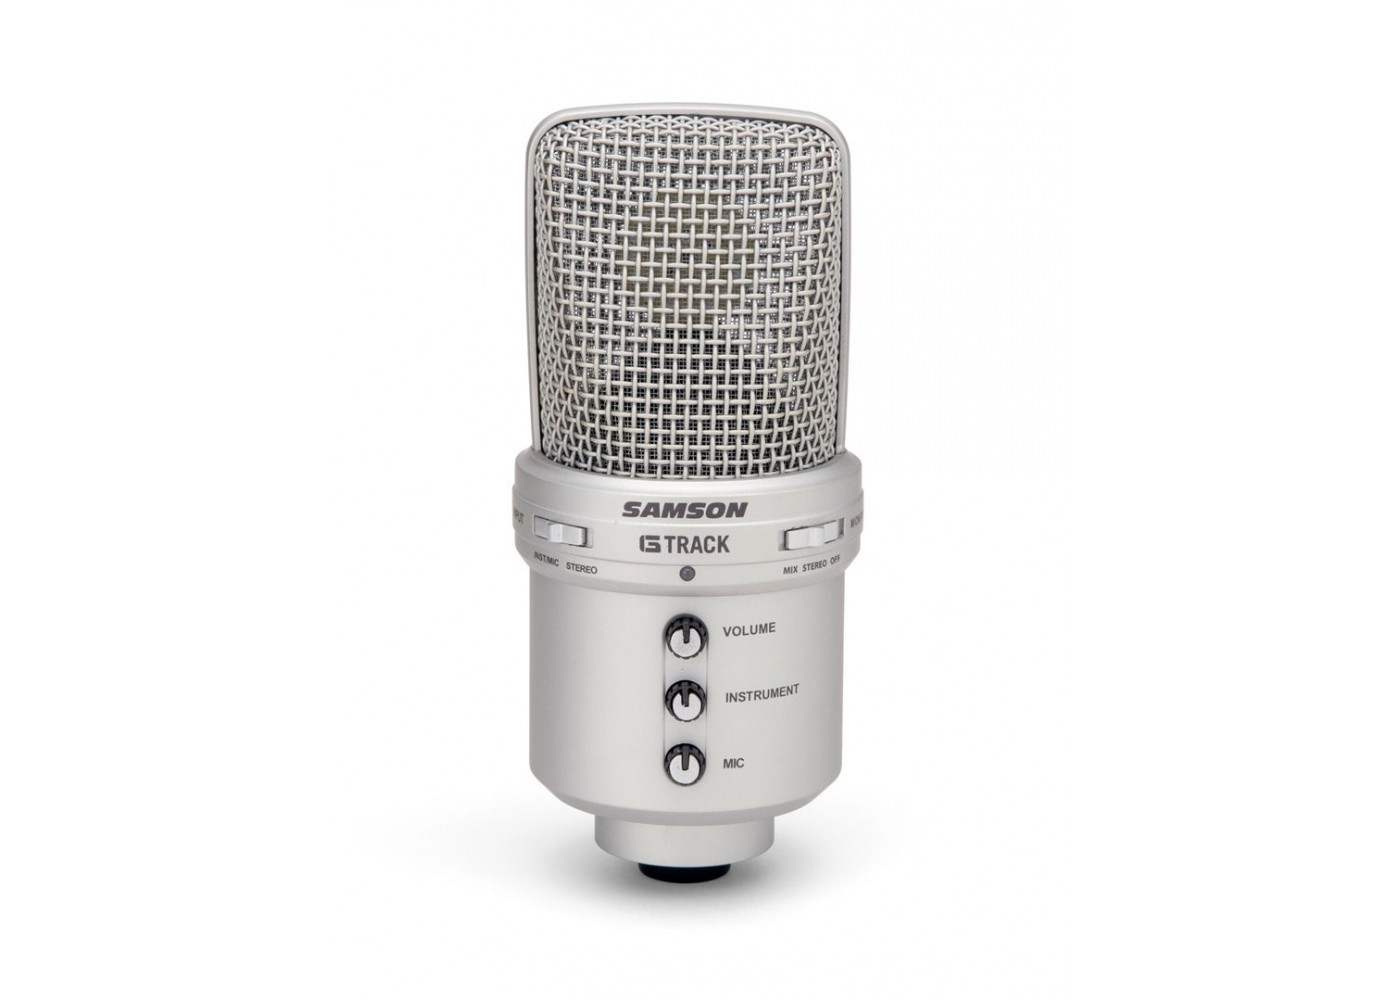 samson g track usb microphone with stereo in and headphone monitor out. Black Bedroom Furniture Sets. Home Design Ideas